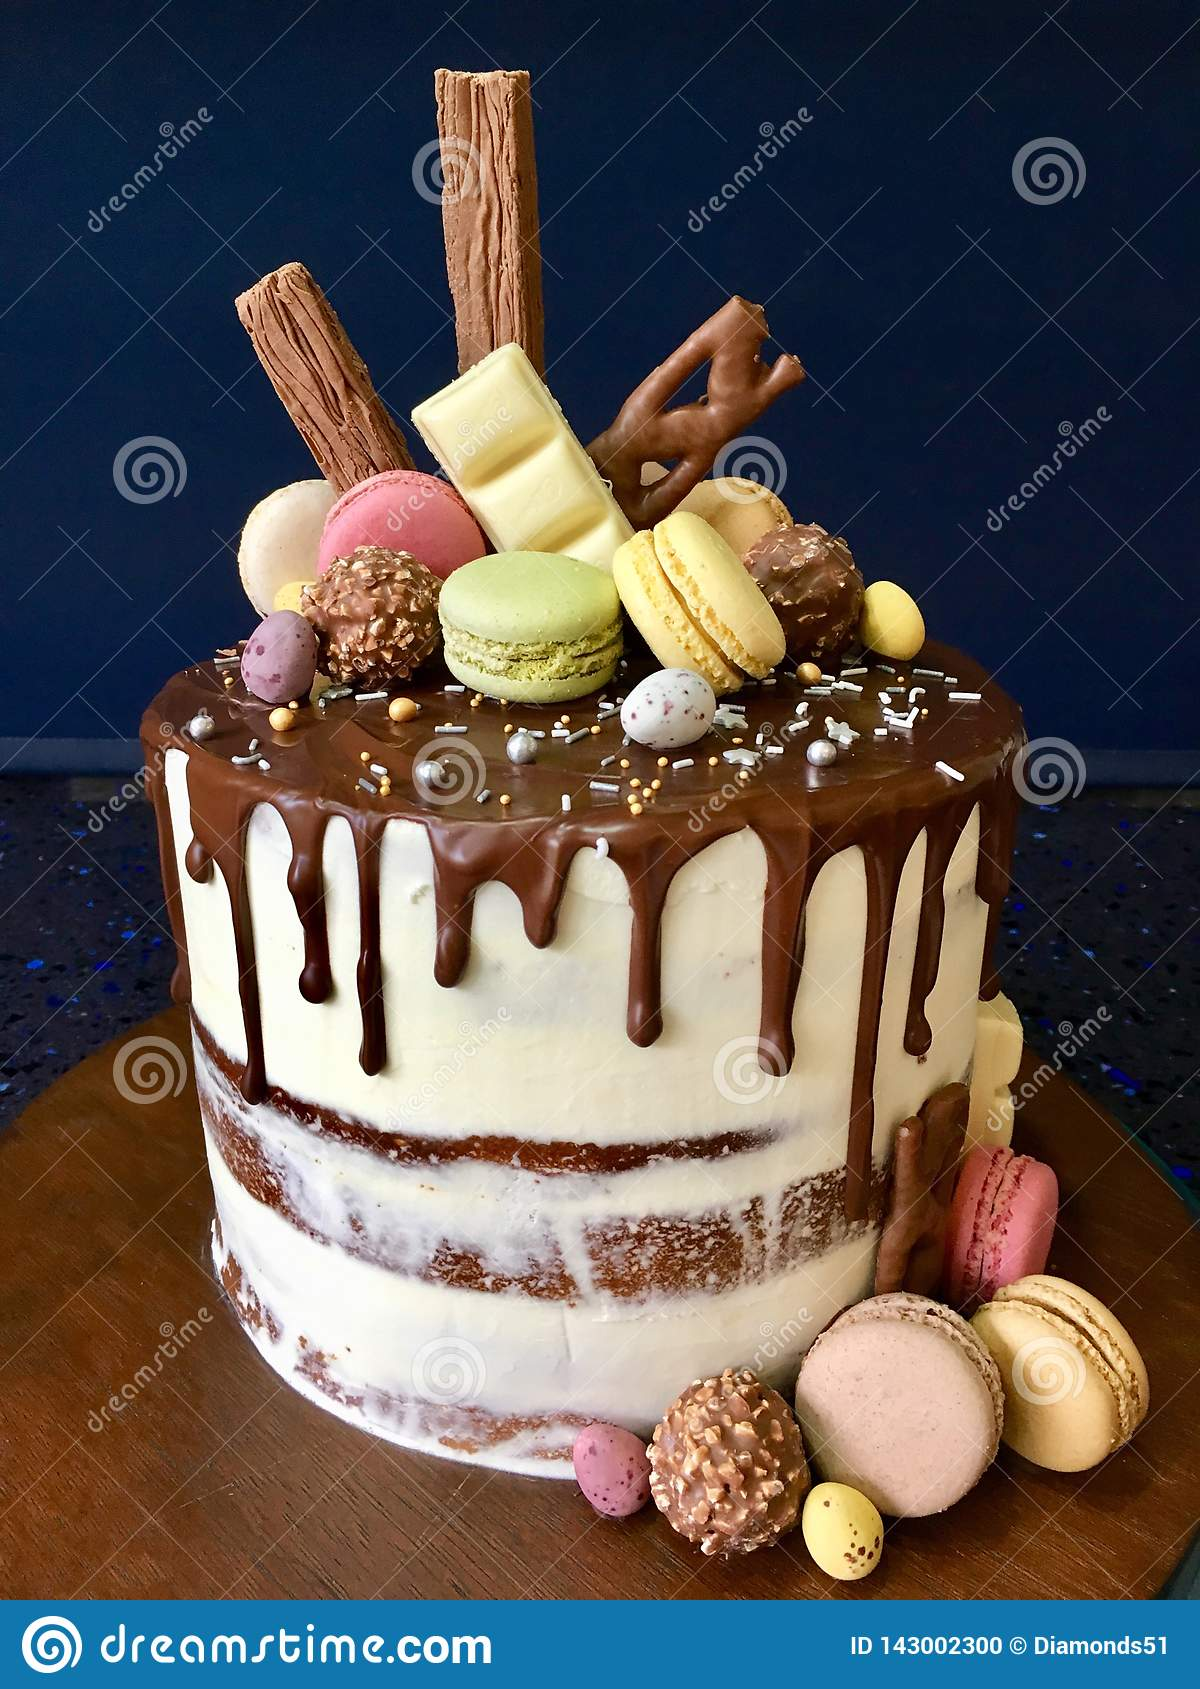 Marvelous Modern Cake Design With Macaroon Topping Stock Photo Image Of Funny Birthday Cards Online Inifodamsfinfo